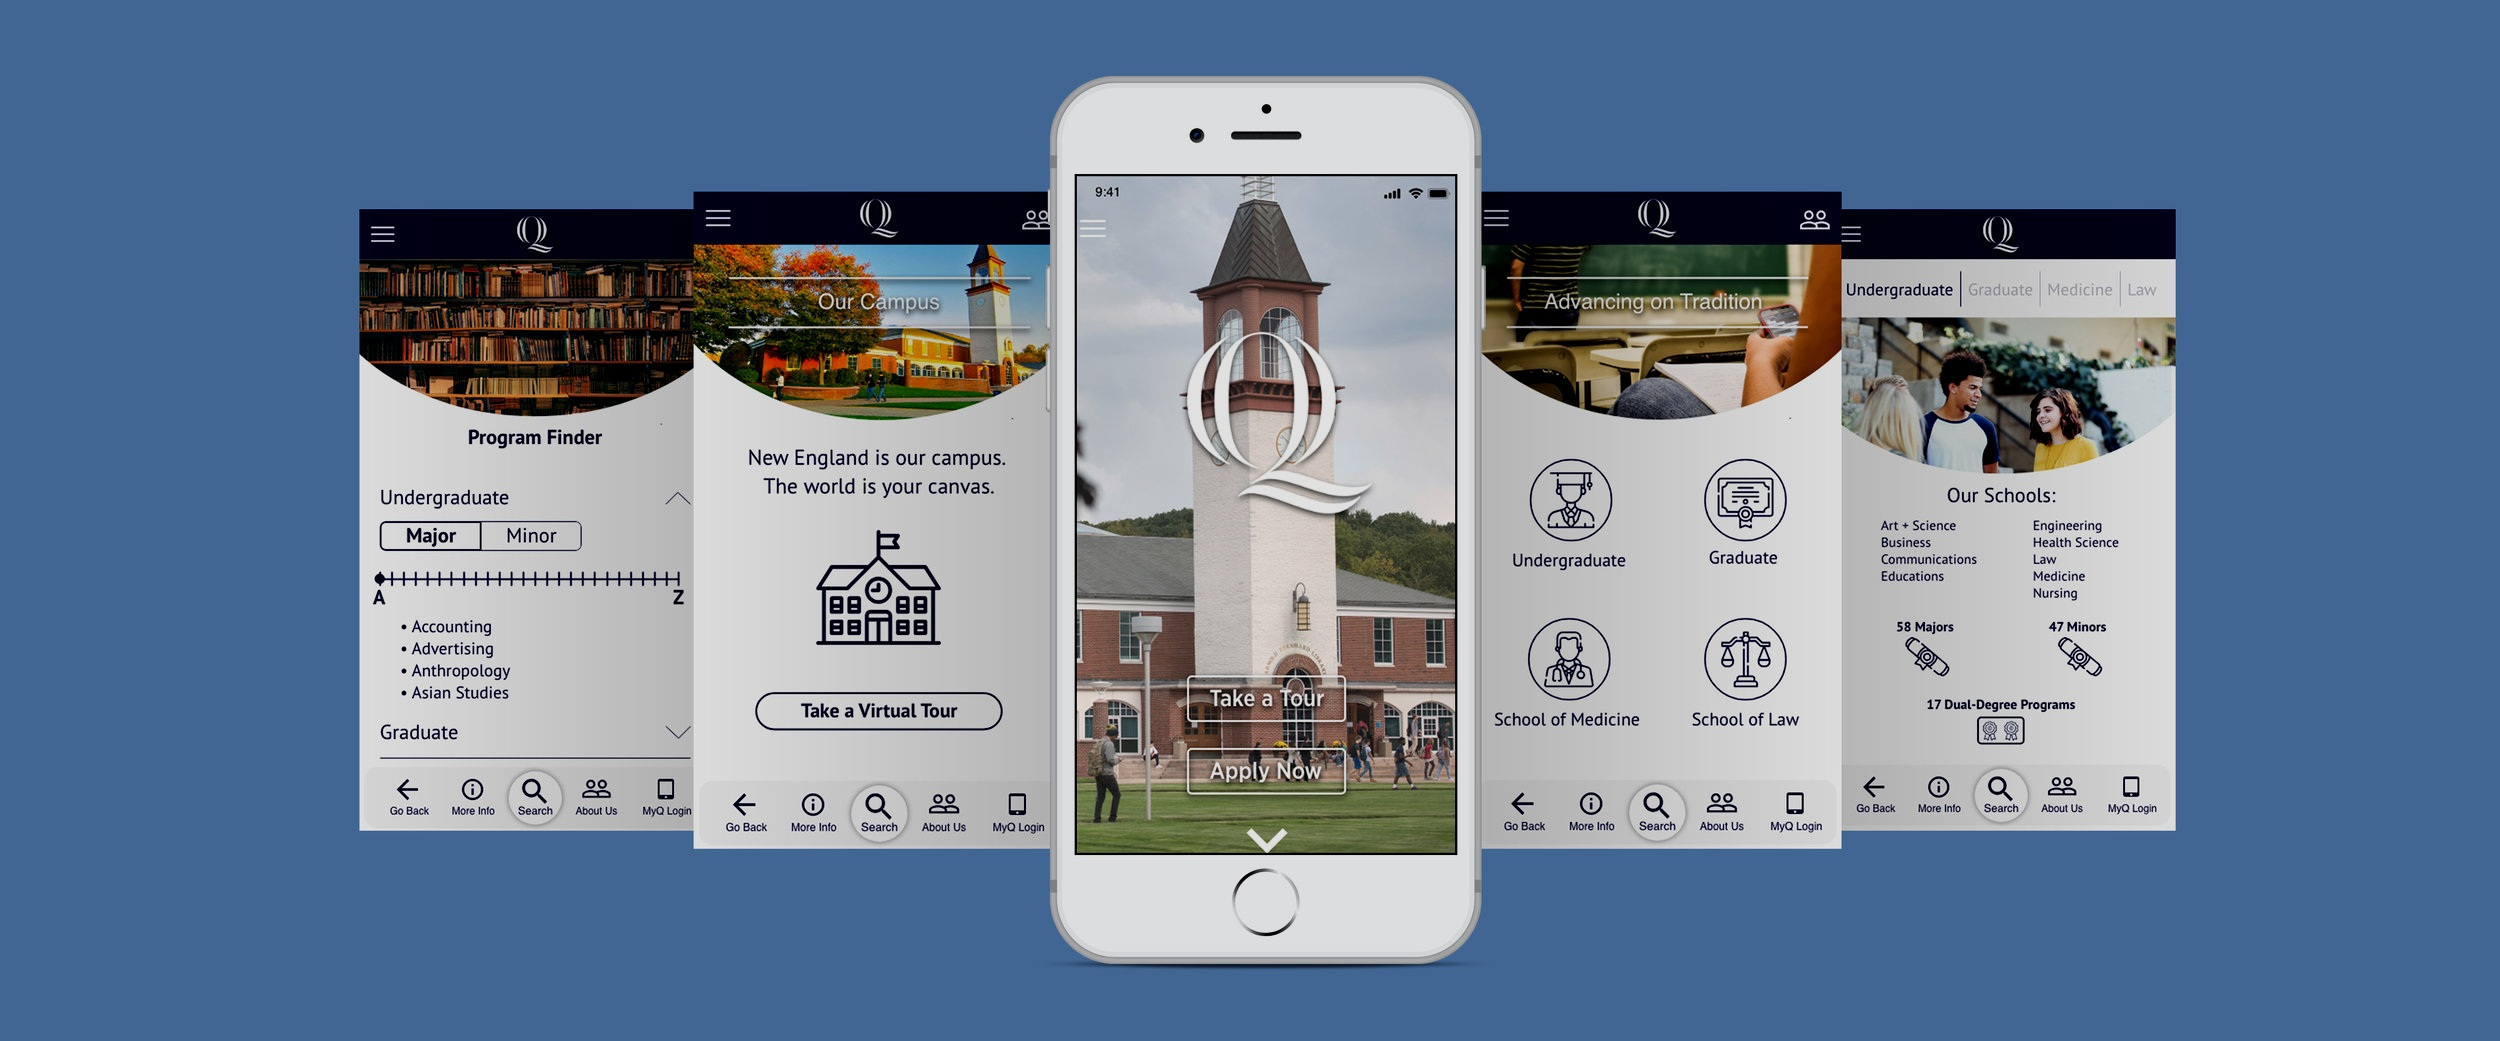 Quinnipiac Mobile App Re-Design - Full Project